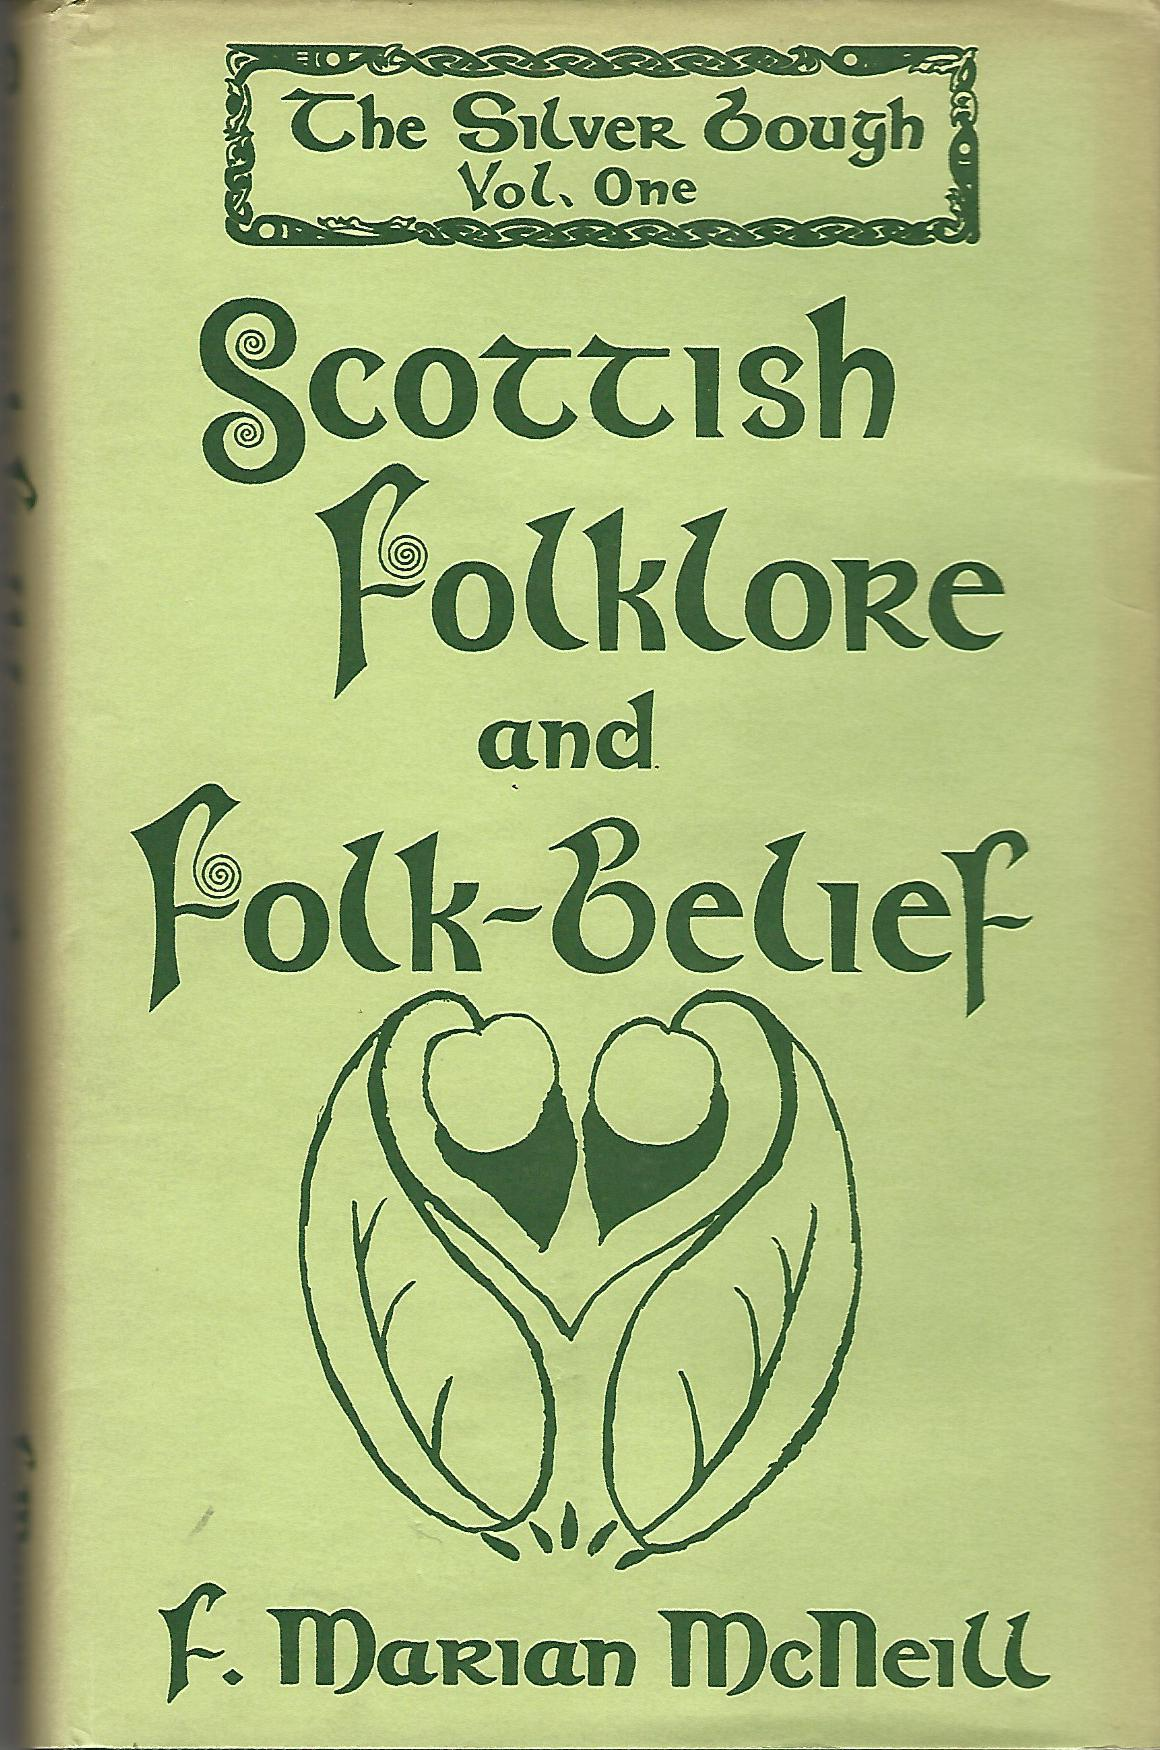 Image for The Silver Bough: Scottish Folklore and Folk-belief v. 1